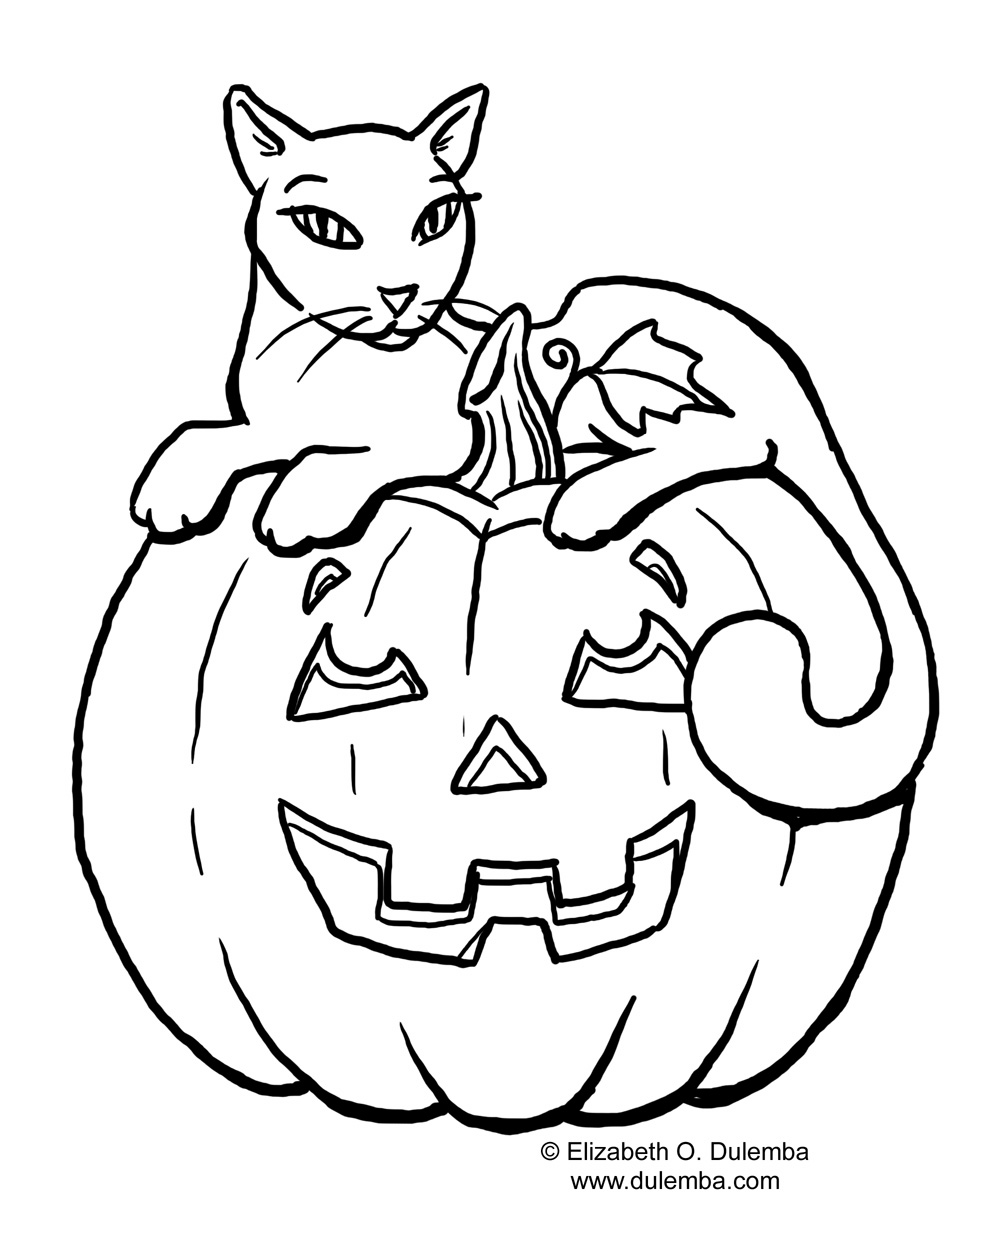 pumkin coloring pages pumpkins coloring page kids play color pages coloring pumkin